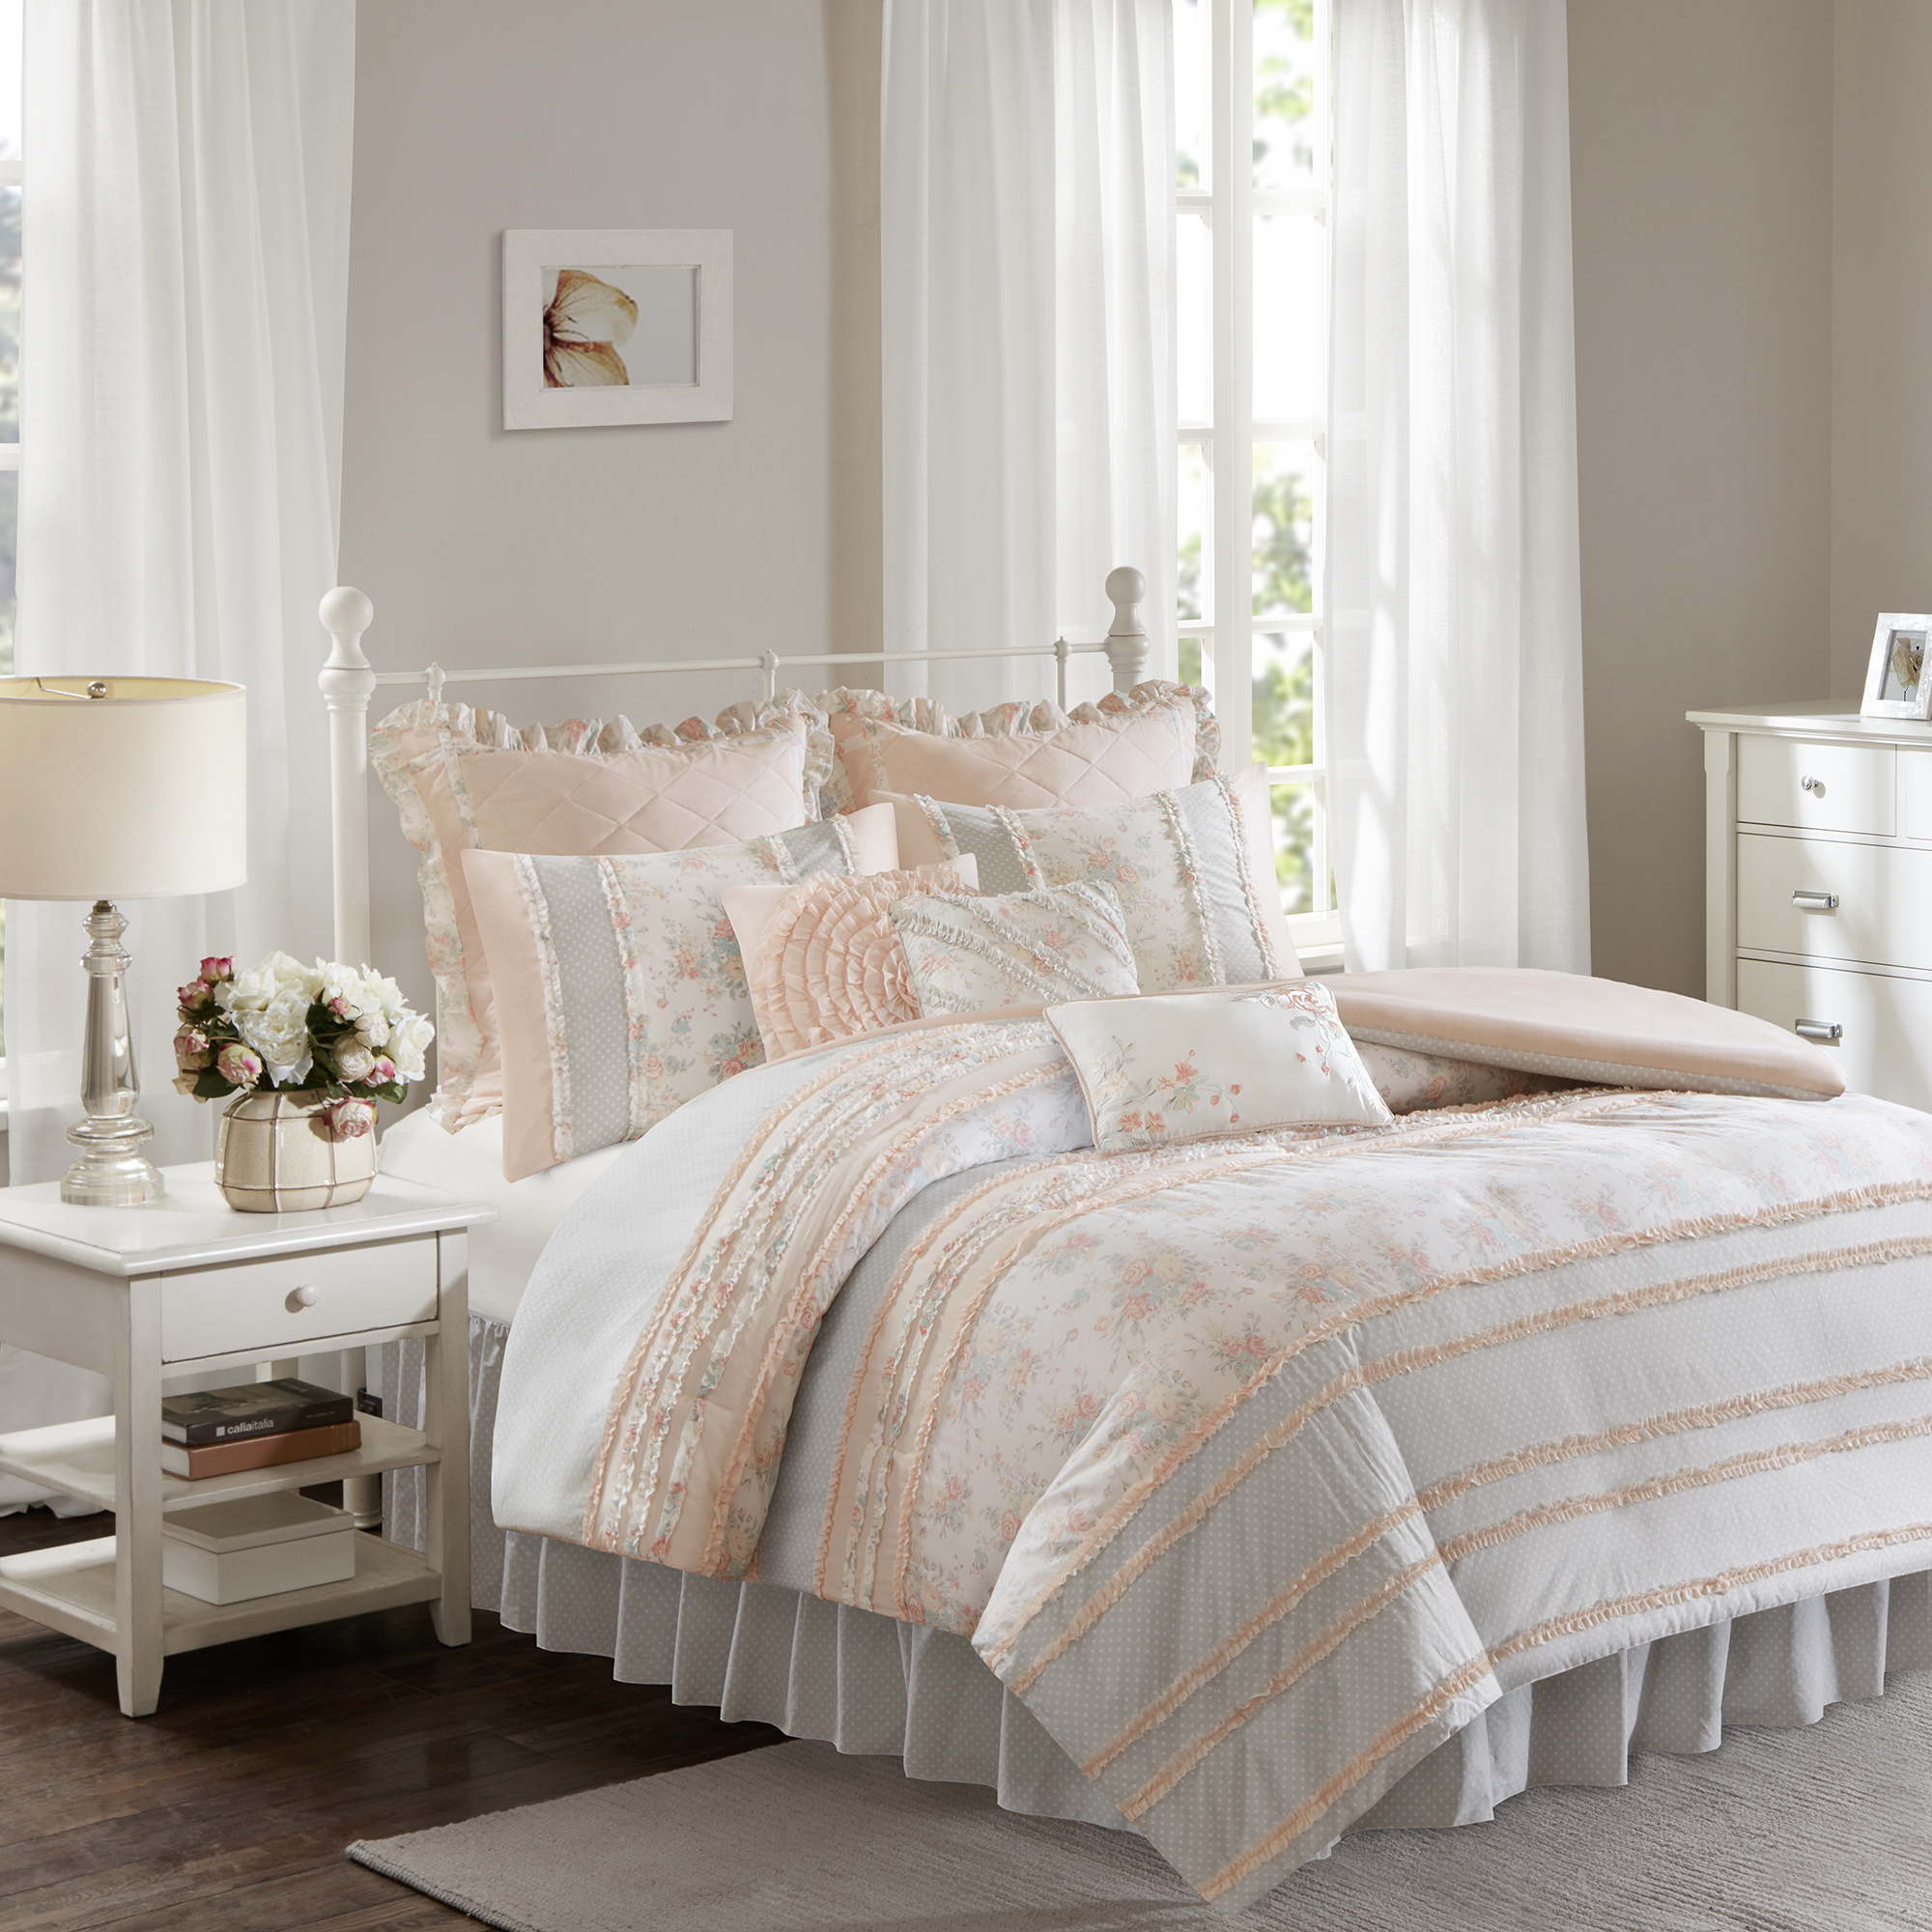 Home Essence Desiree Cotton Percale Duvet Cover Bedding Set